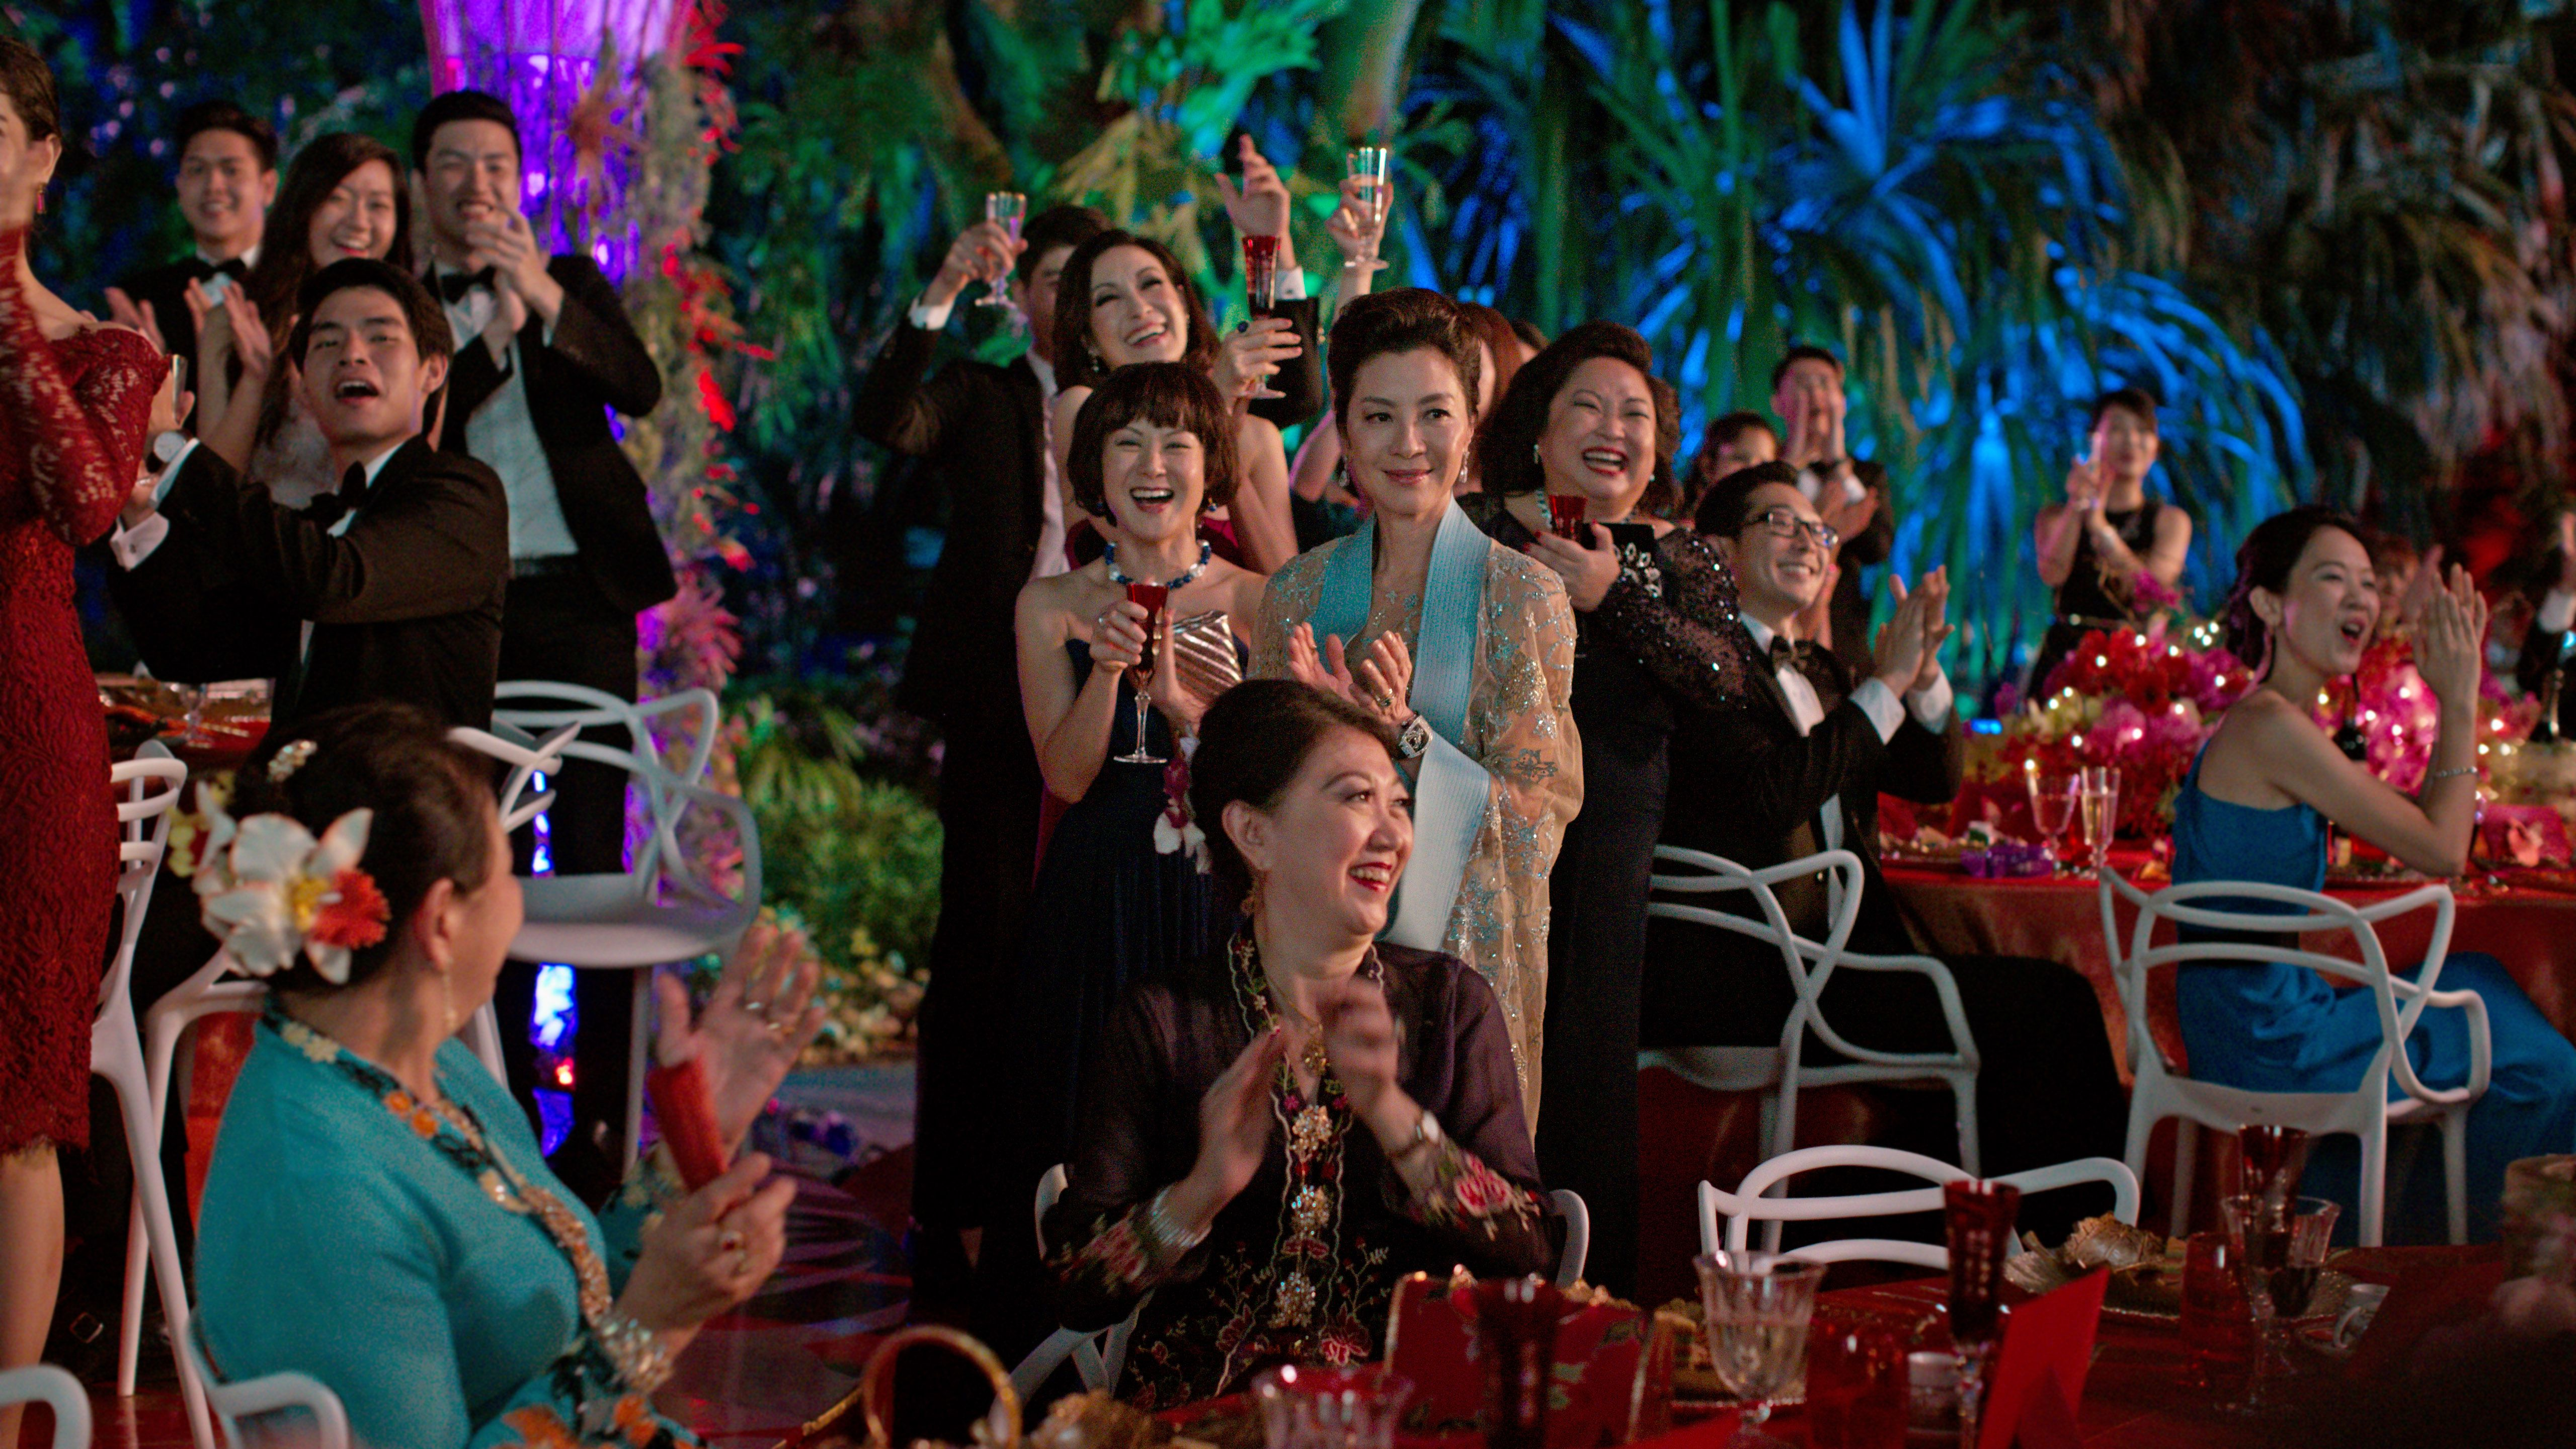 Bernadette Penotti how 'crazy rich asians' producers steered a box office smash